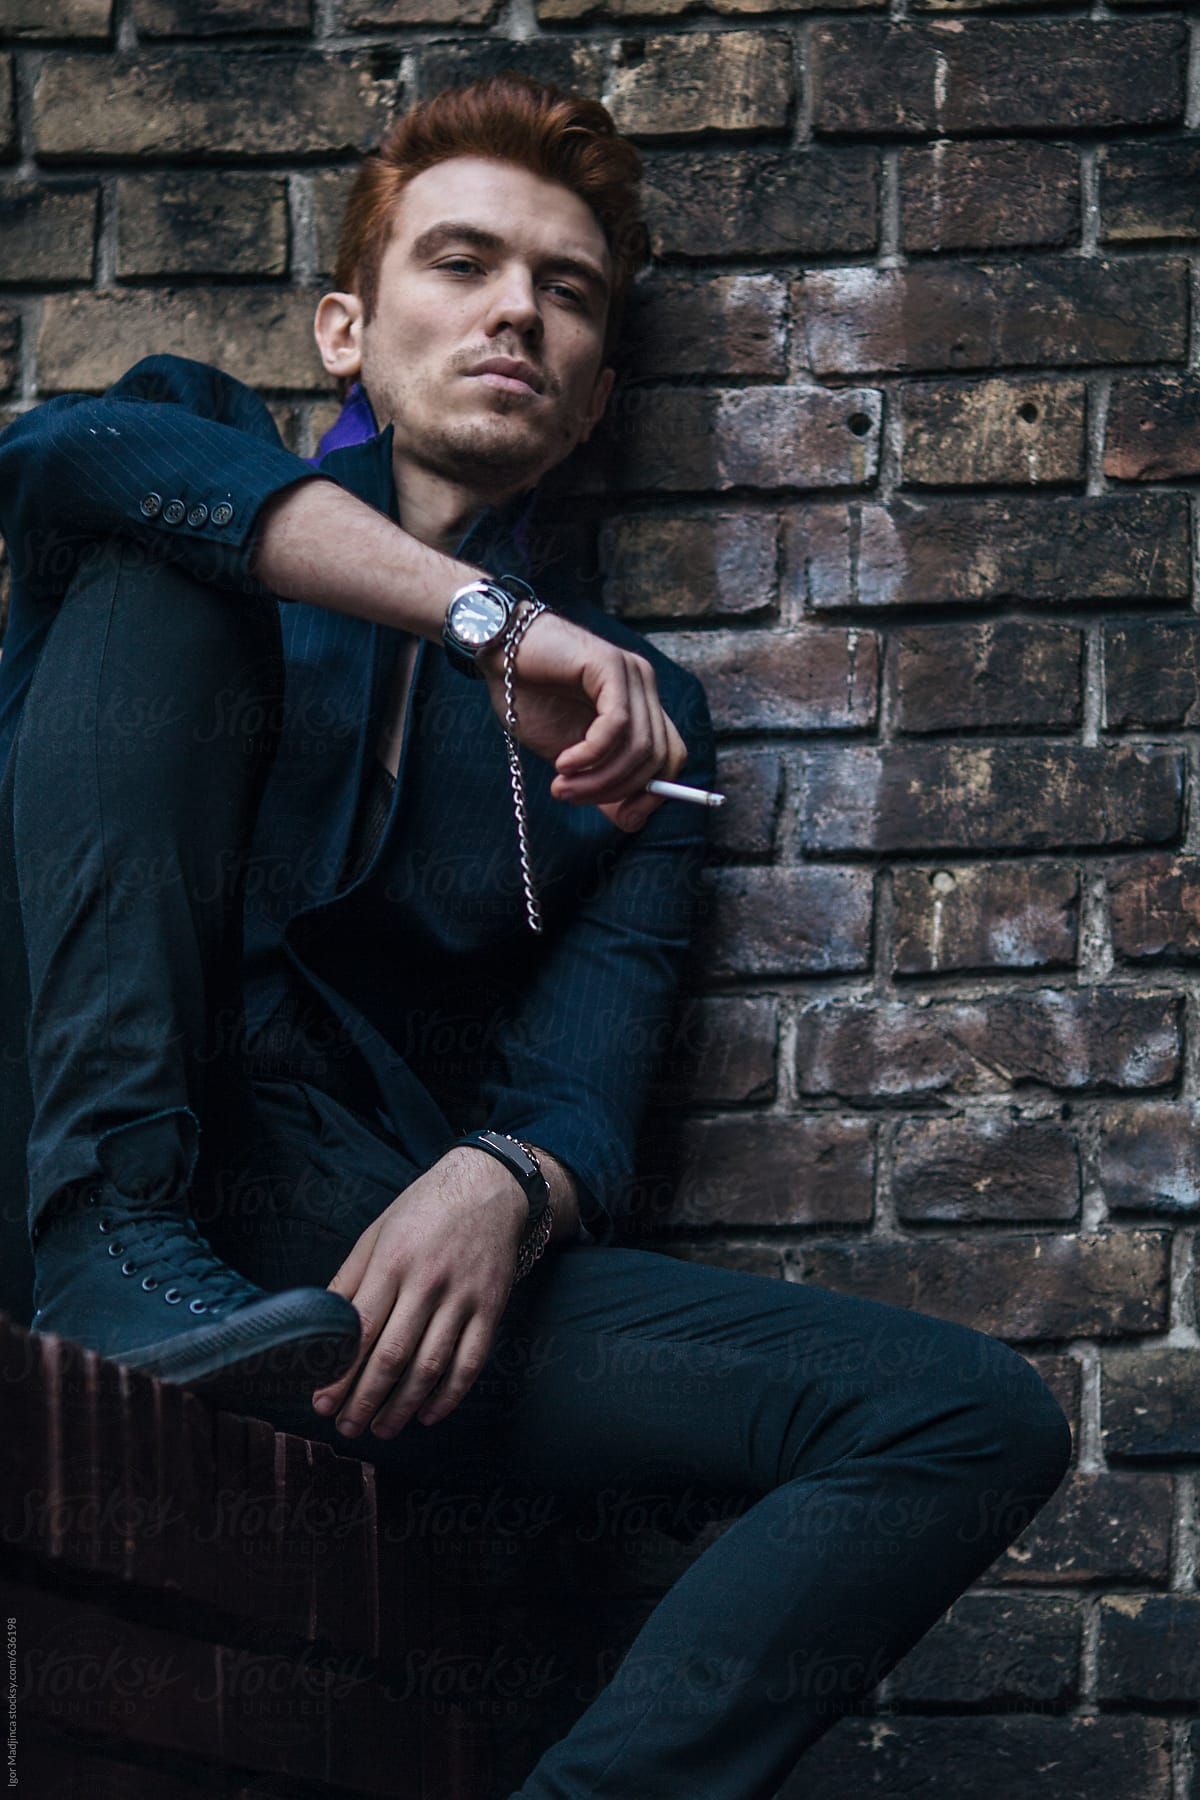 Young Man Leaning Against The Wall Smokes A Cigar Rockabilly Punk Style By Igor Madjinca Stocksy United Male Portrait Punk Fashion Male Poses